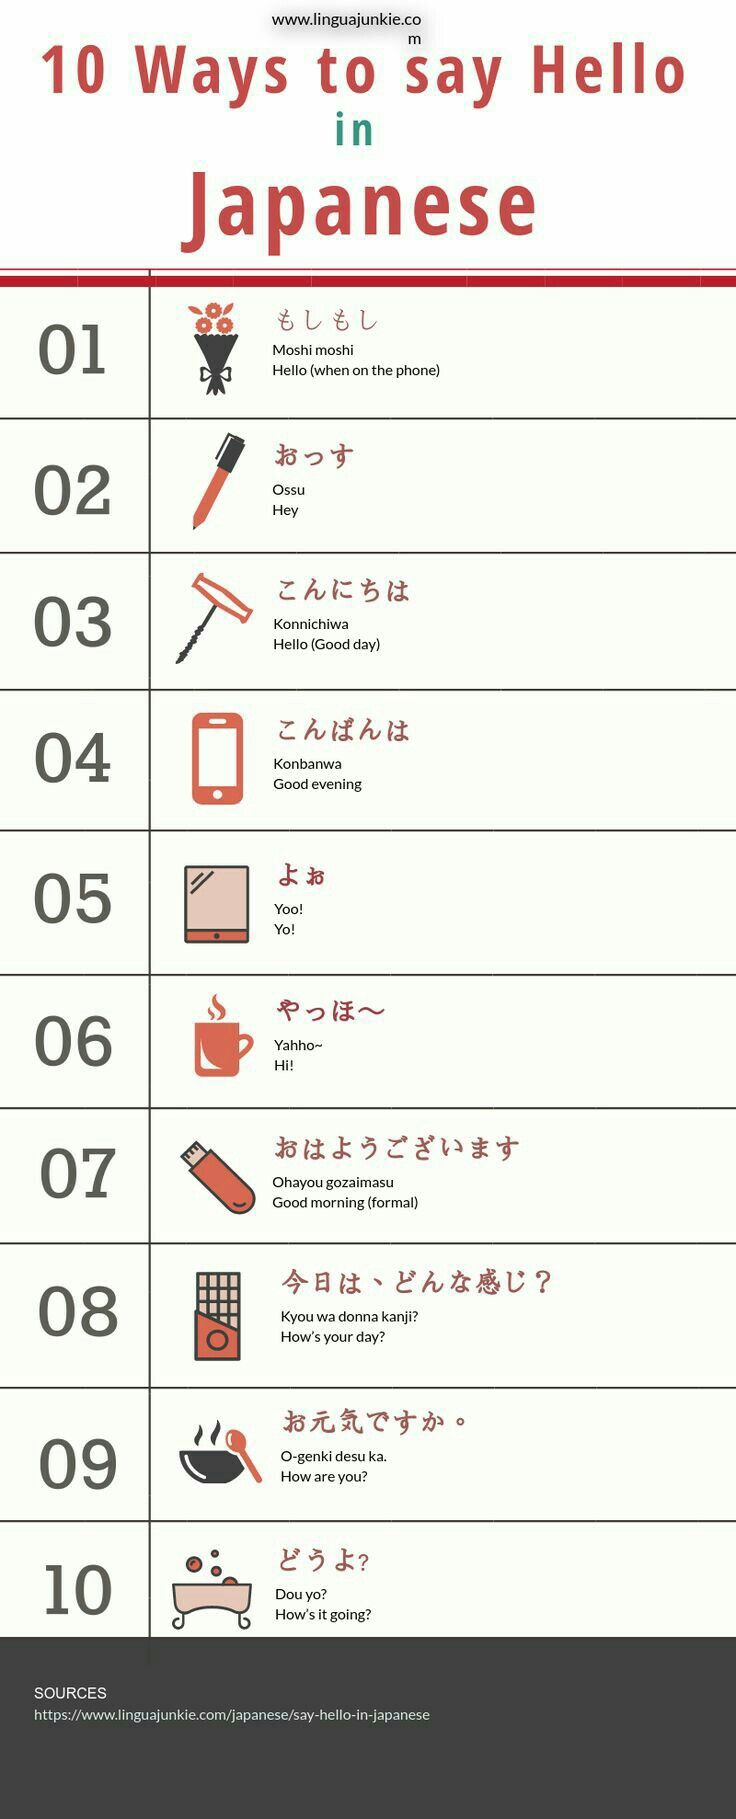 Educational image by Matthew Hope Say hello in japanese